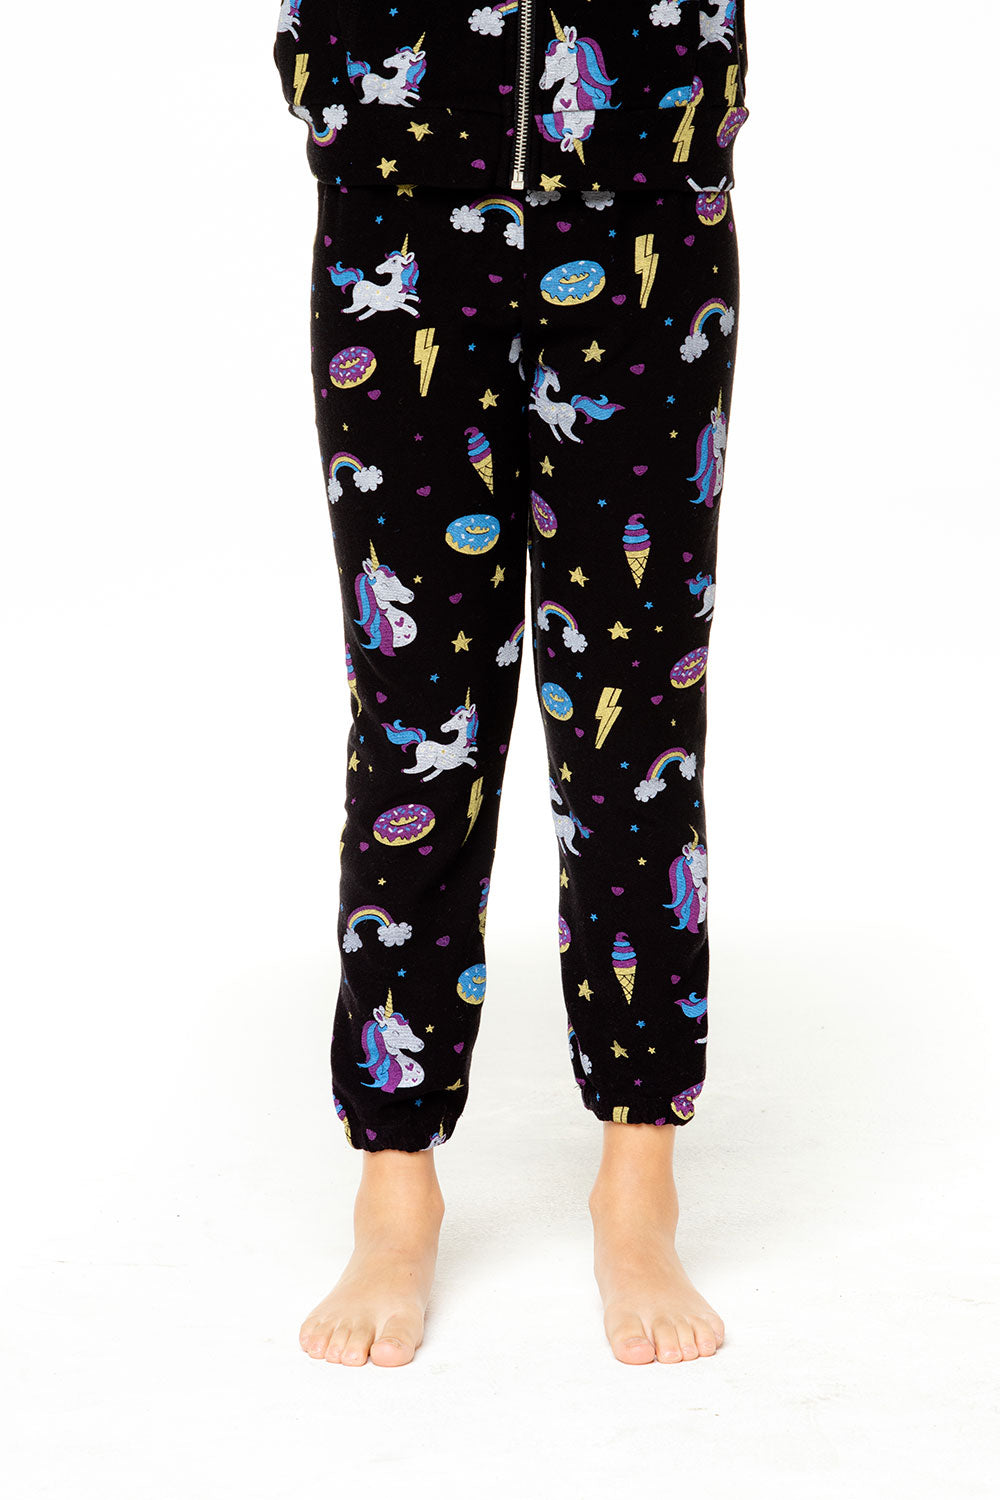 Unicorn Friends Pant GIRLS chaserbrand4.myshopify.com